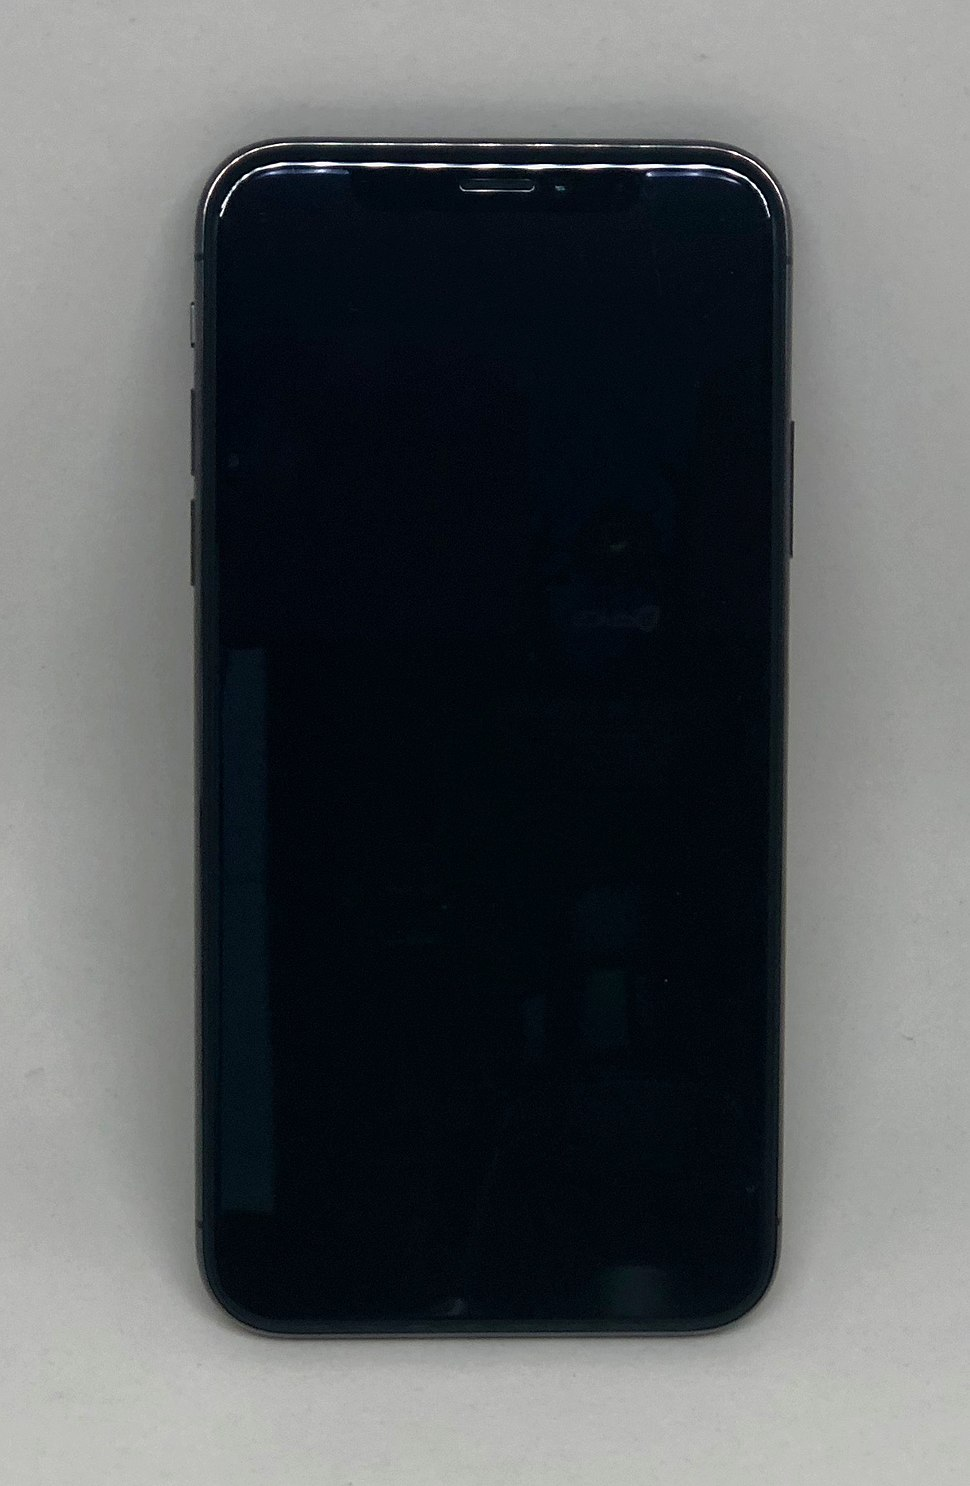 Apple iPhone X - front (8121)